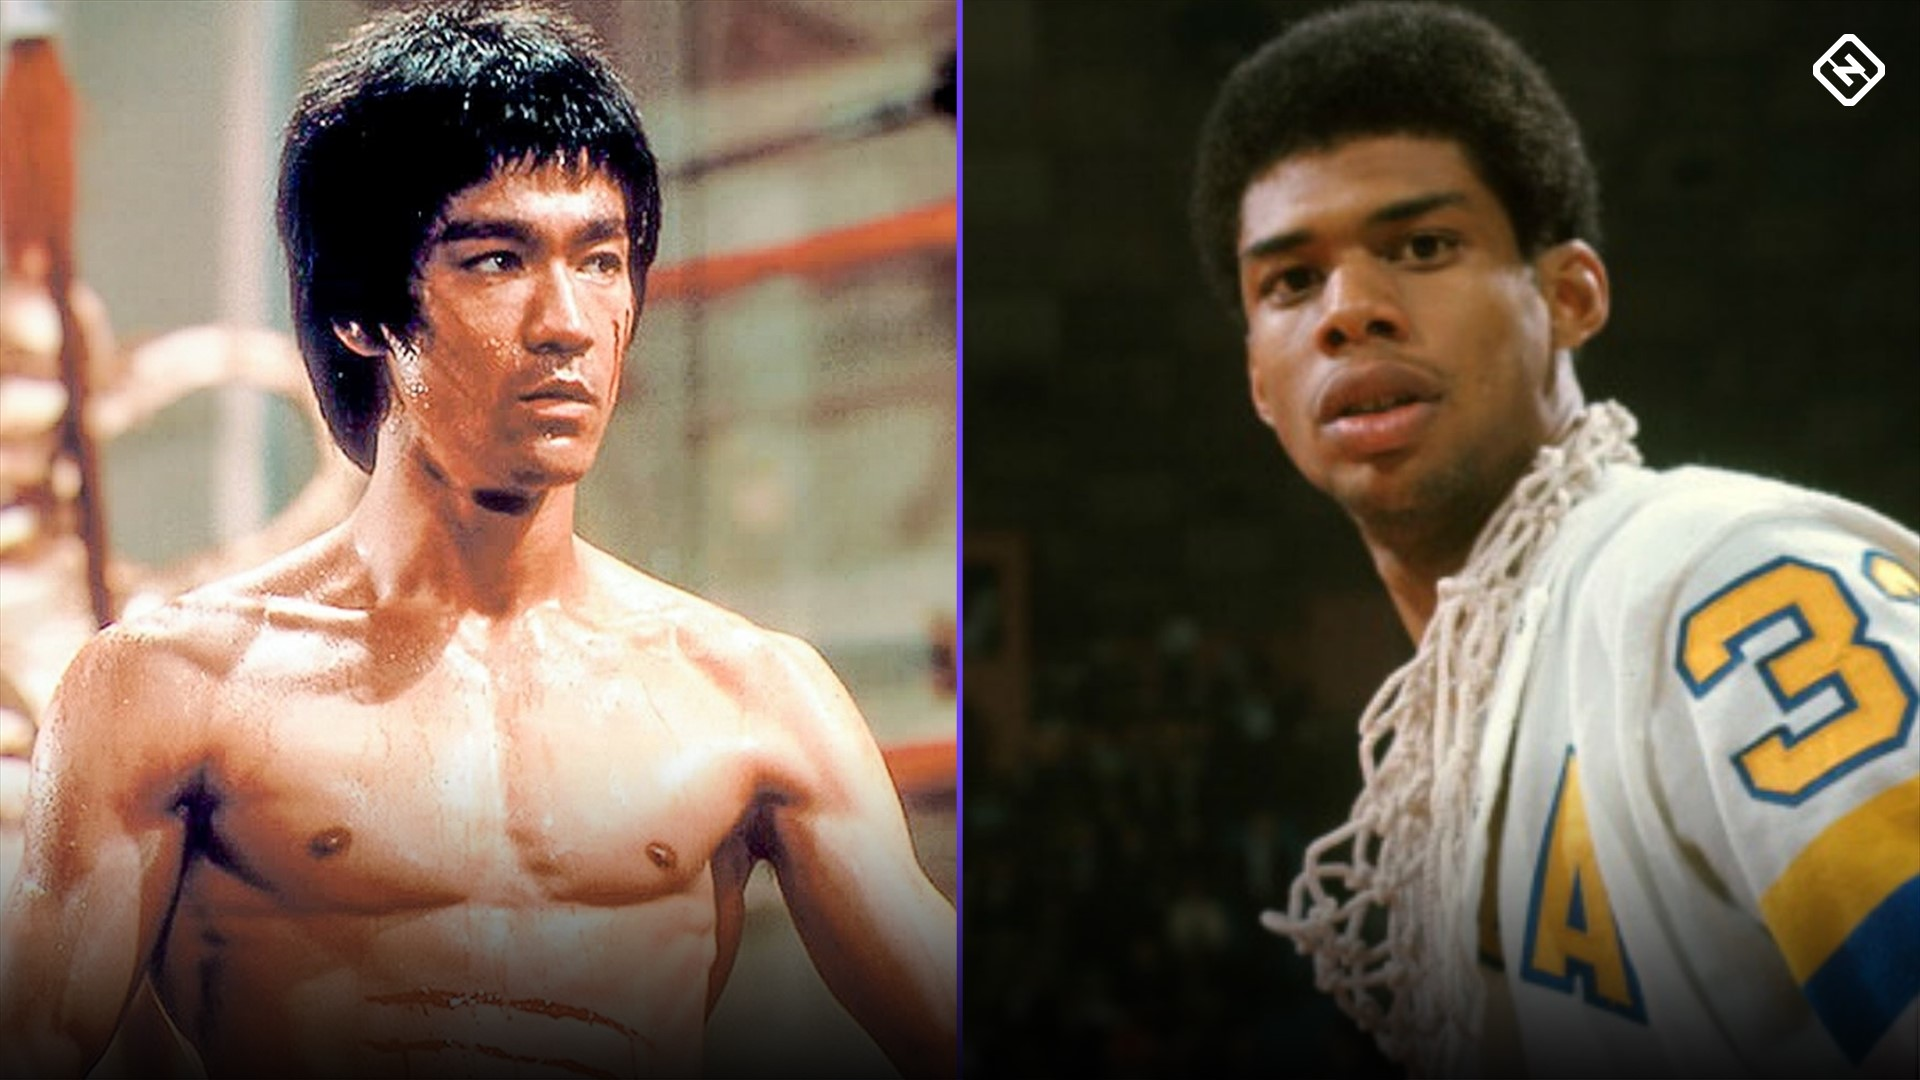 Photo of Kareem Abdul-Jabbar and Bruce Lee: How the friendship led to a legendary fight scene